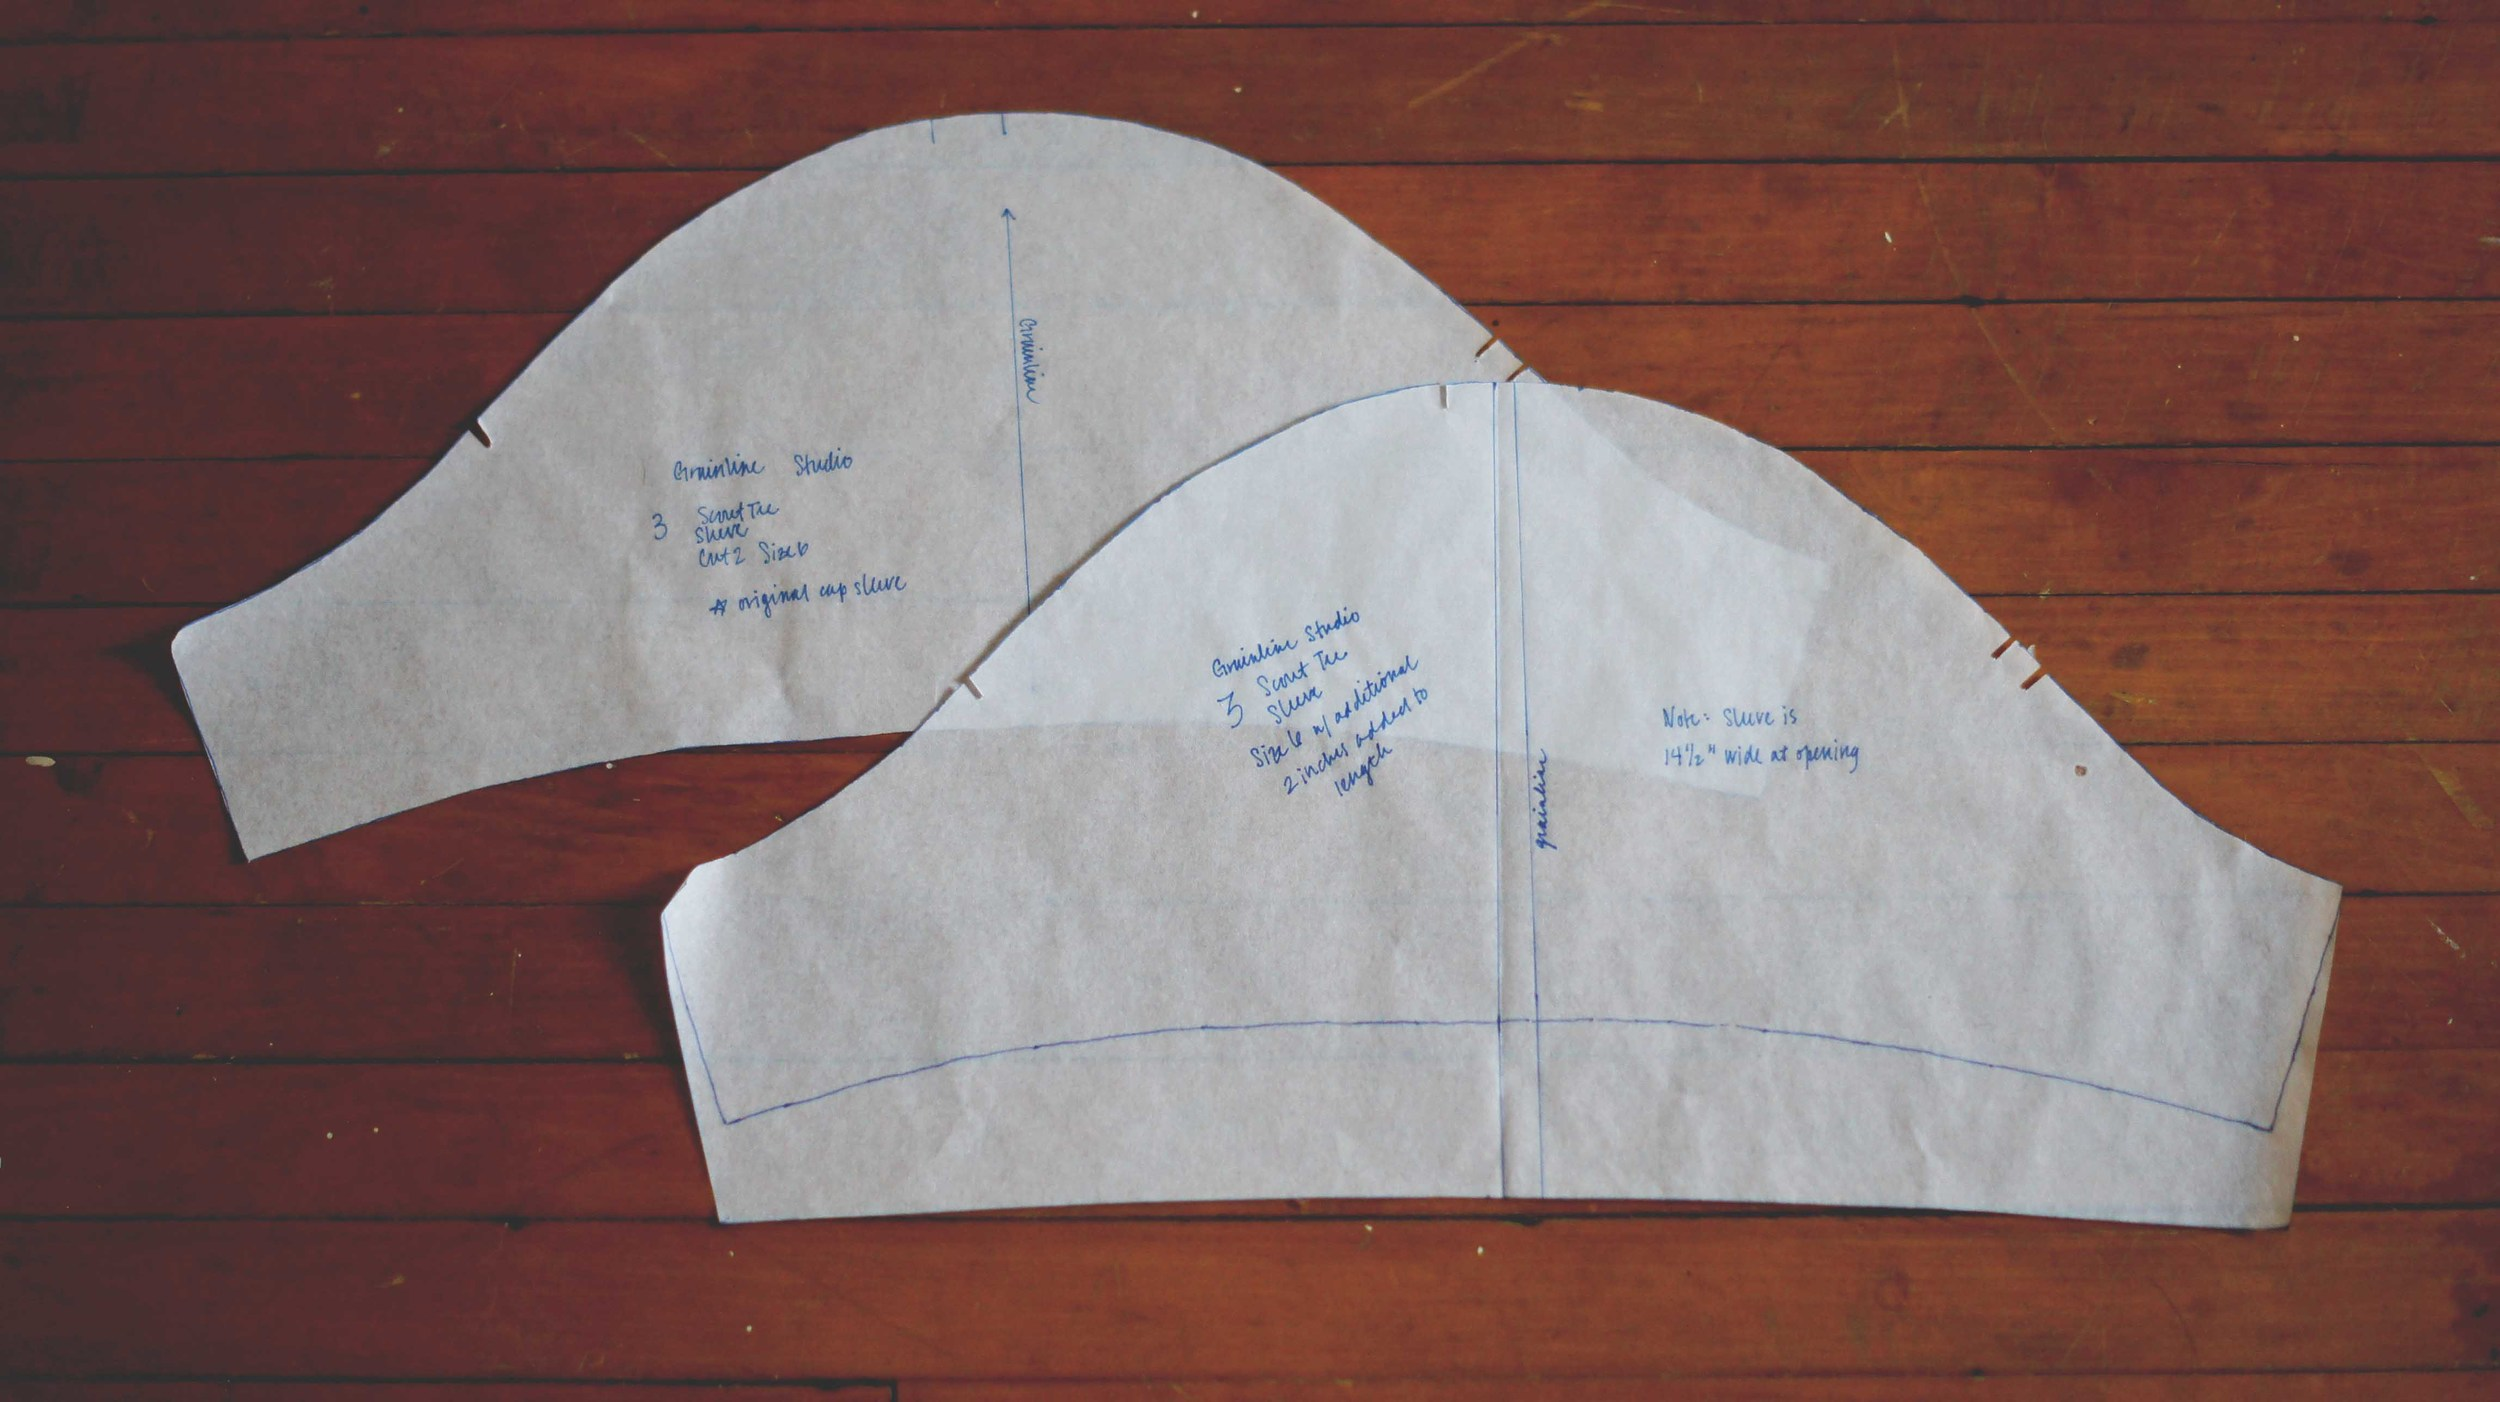 A comparison: you can clearly see here the modification I made to the sleeve pattern as described above.